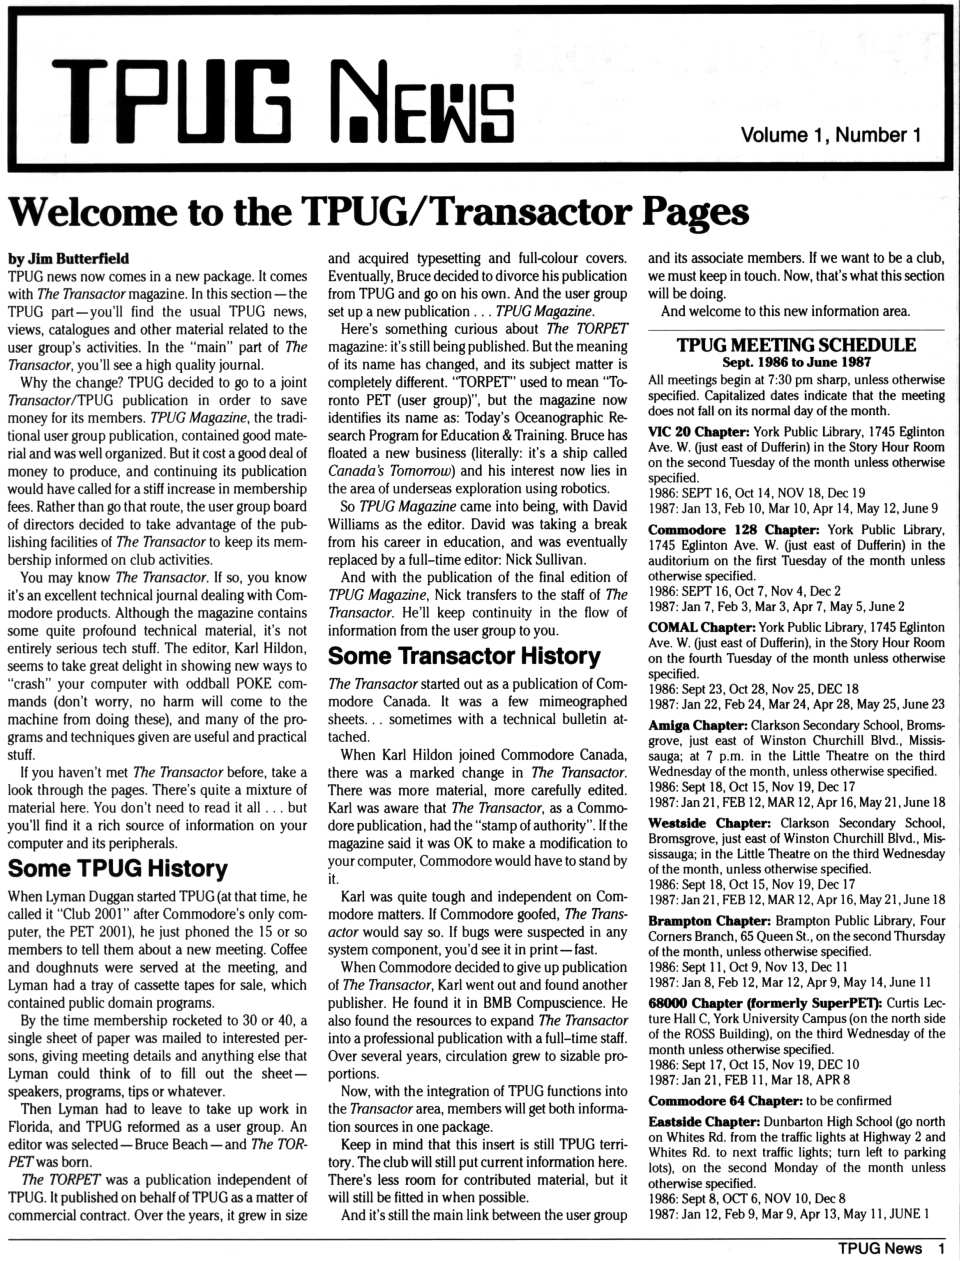 [TPUG News, Volume 1, Number 1, page 1  Welcome to the TPUG/Transactor Pages]